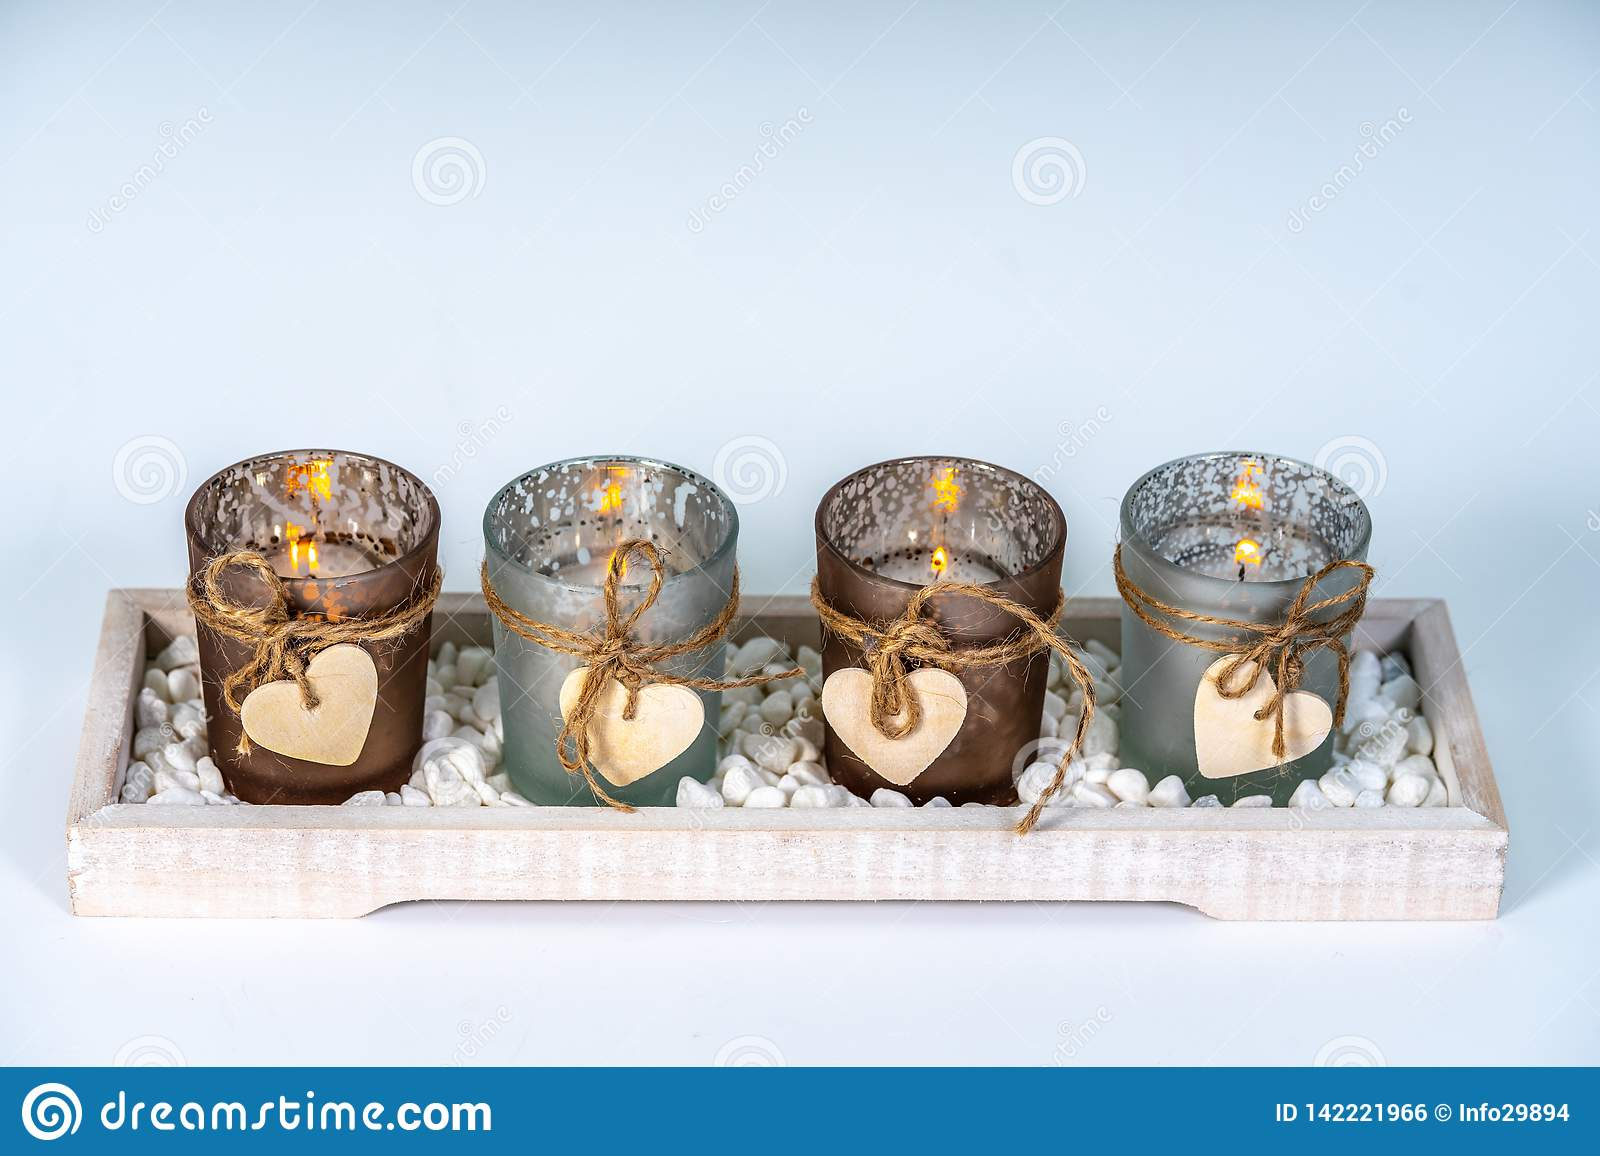 4 candlesticks decorated with a heart